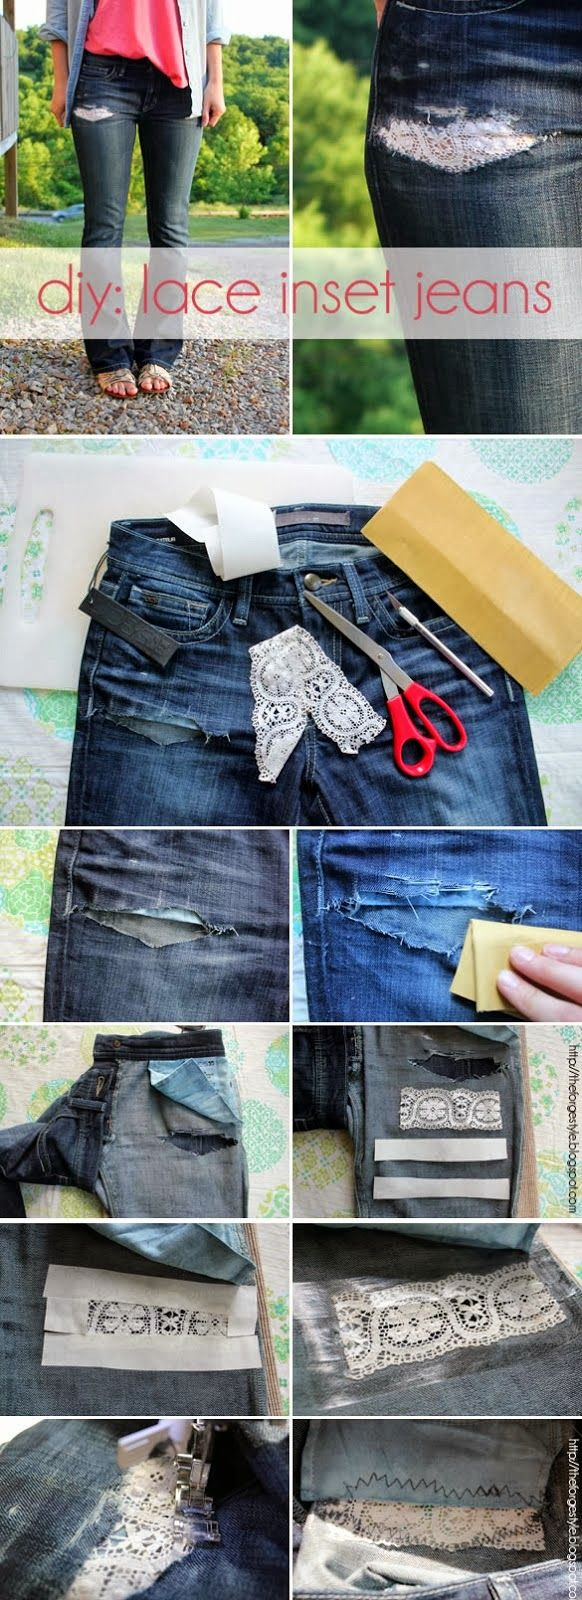 My DIY Projects: Diy : Lace inset into jeans